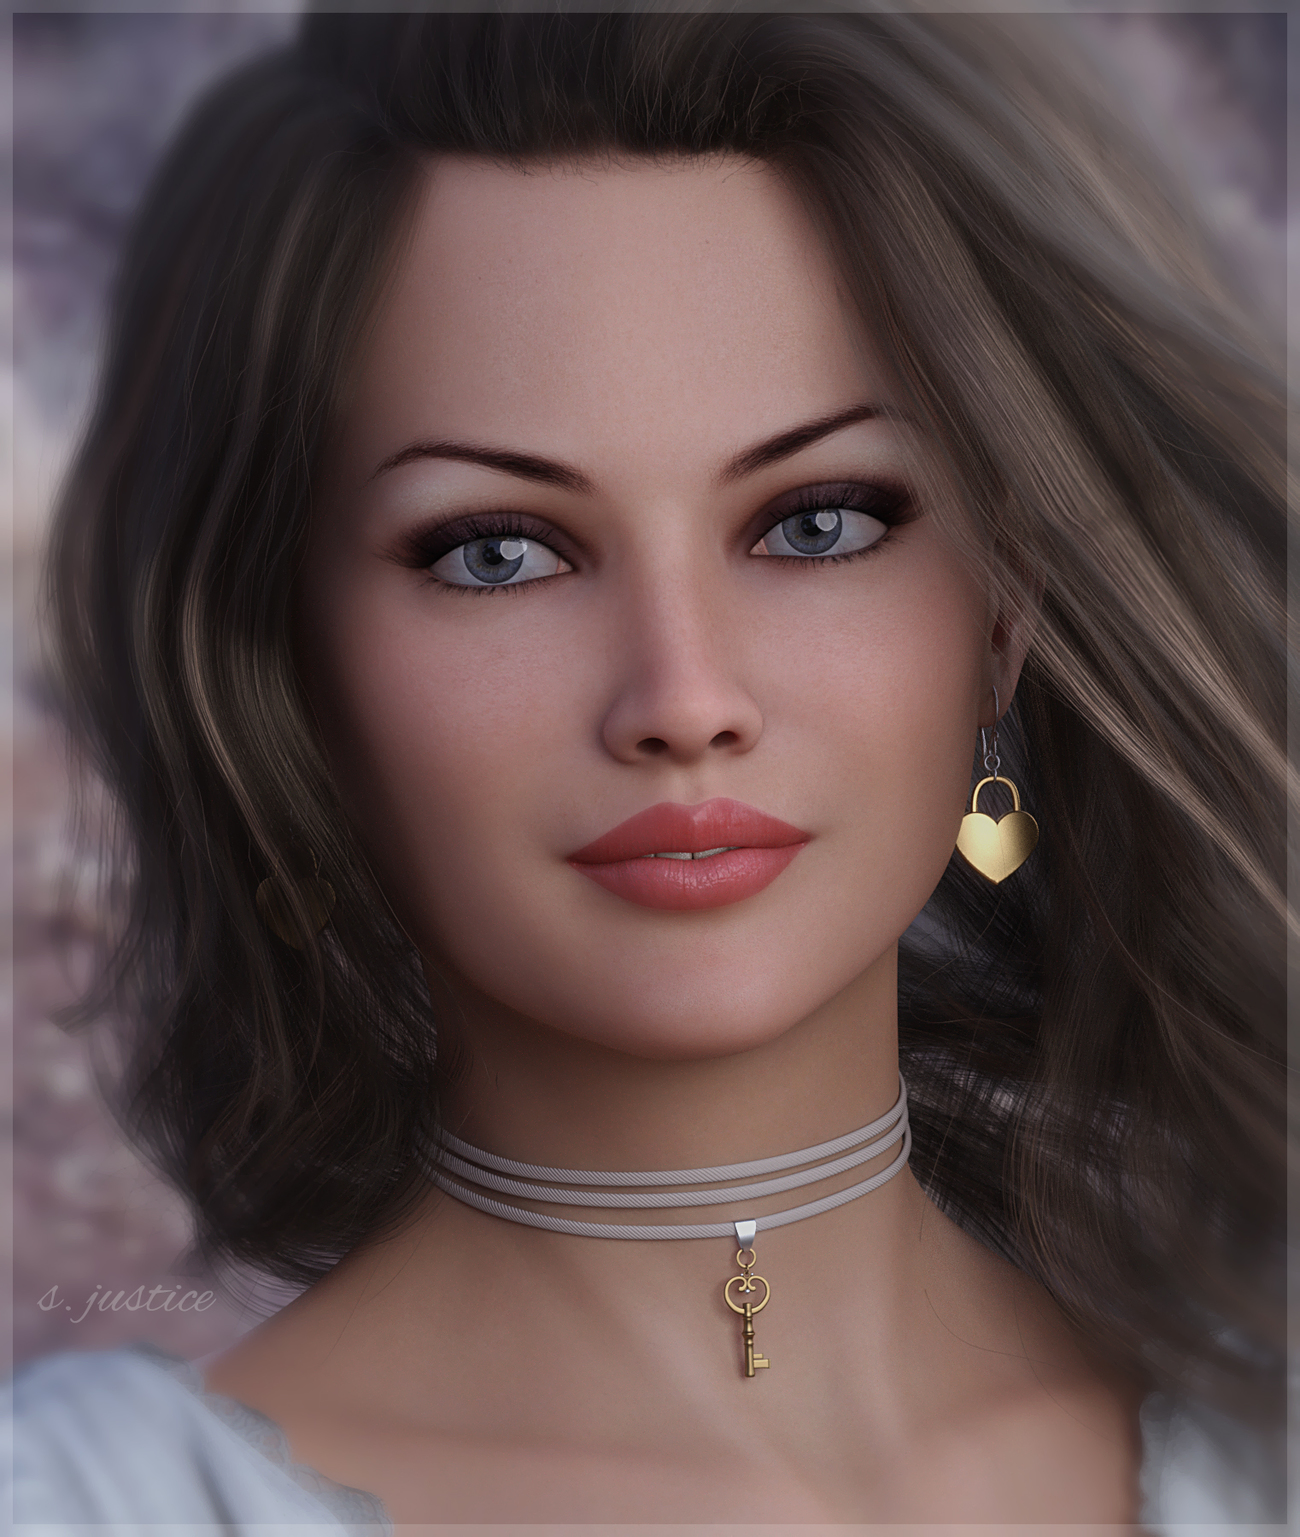 Romantic Portrait